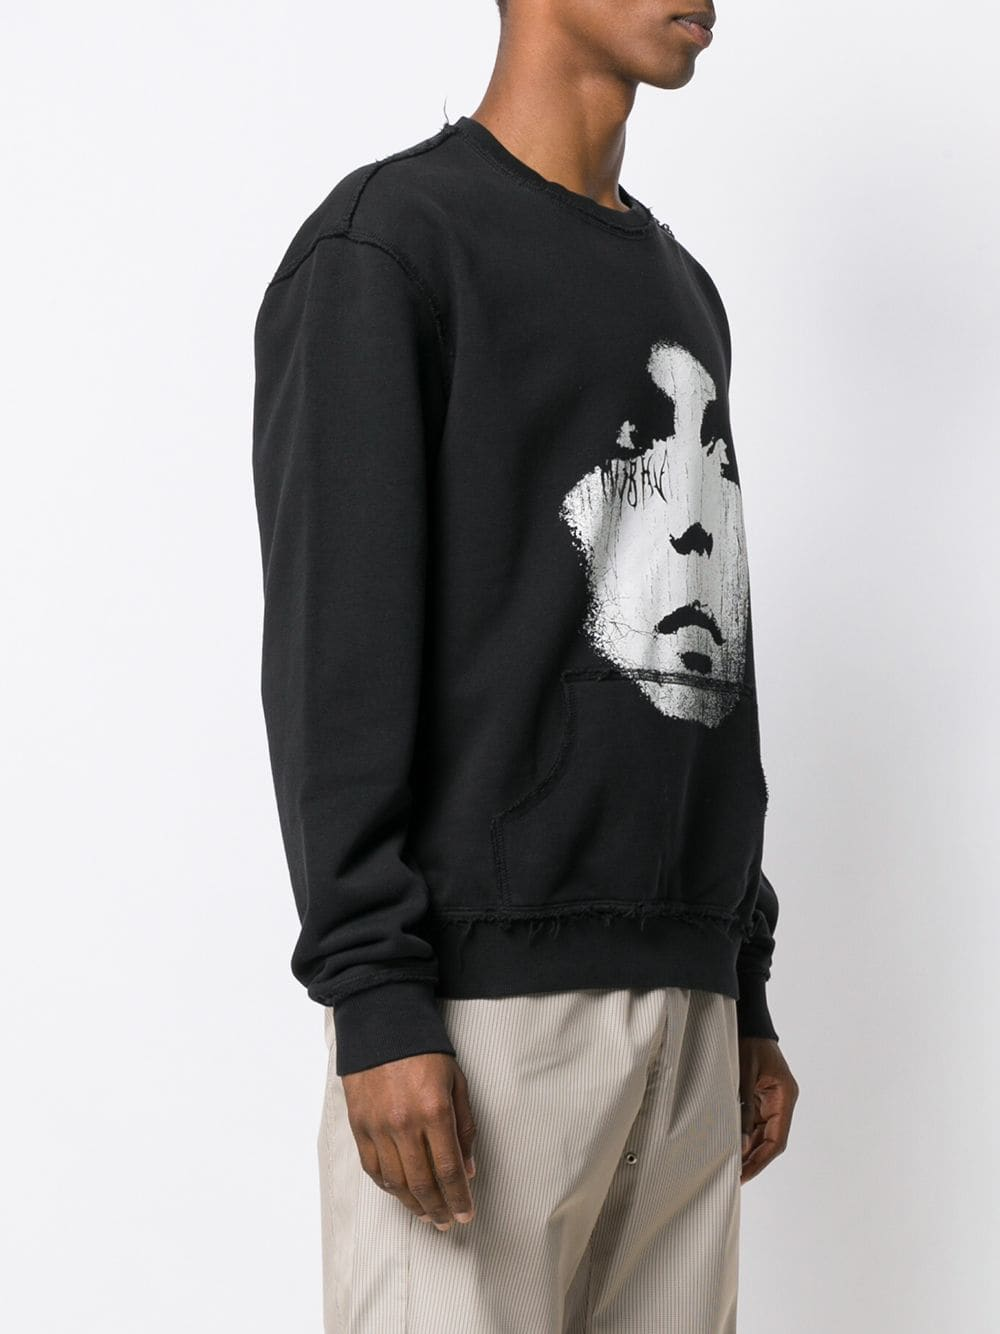 MISBHV MEN THE SCREEN PRINT CREWNECK